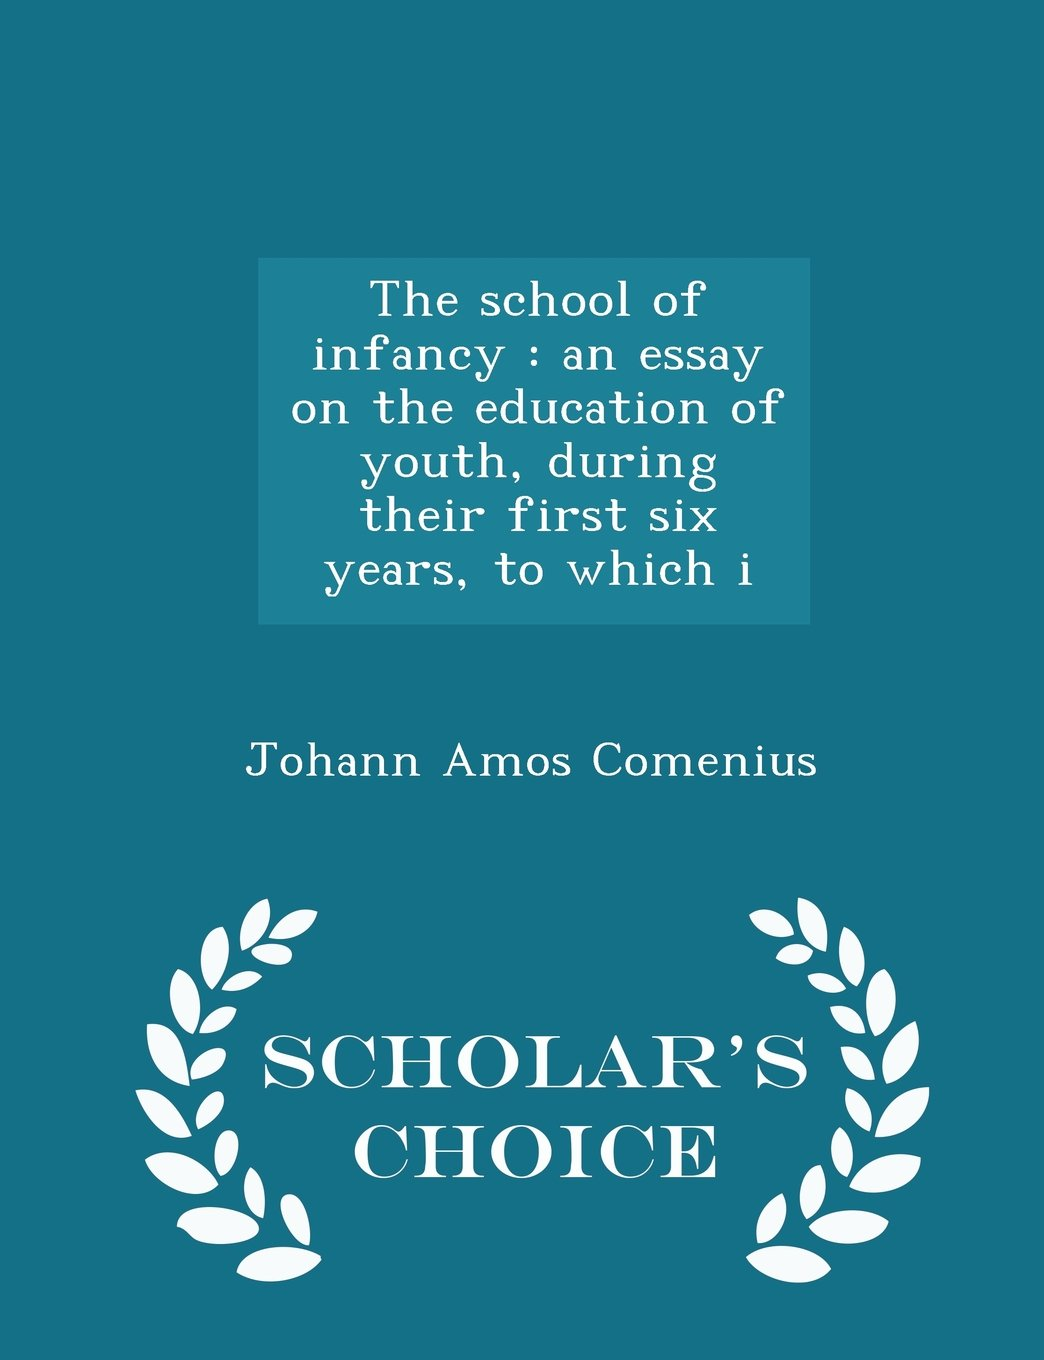 The school of infancy: an essay on the education of youth, during their first six years, to which i - Scholar's Choice Edition PDF